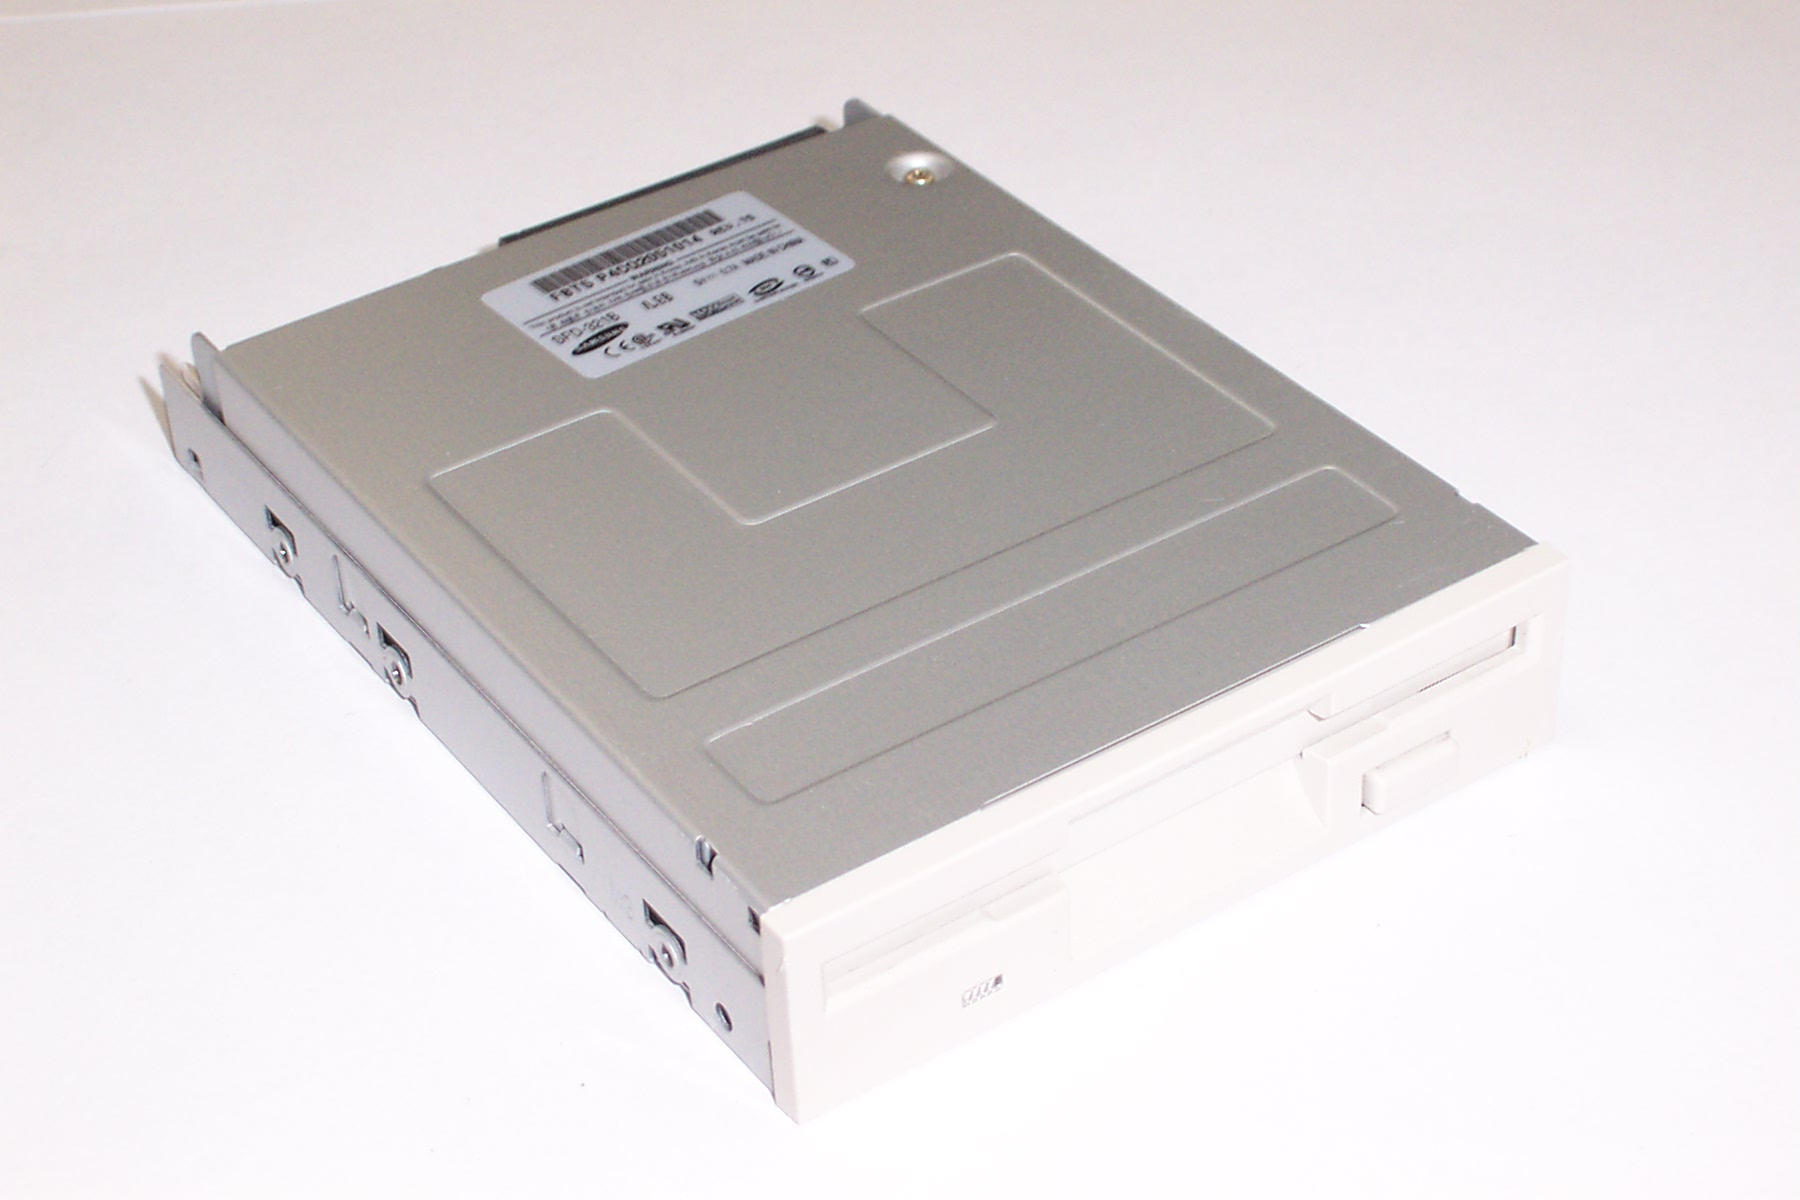 SAMSUNG SFD-321B/LEB FLOPPY DRIVE Enlarged Preview